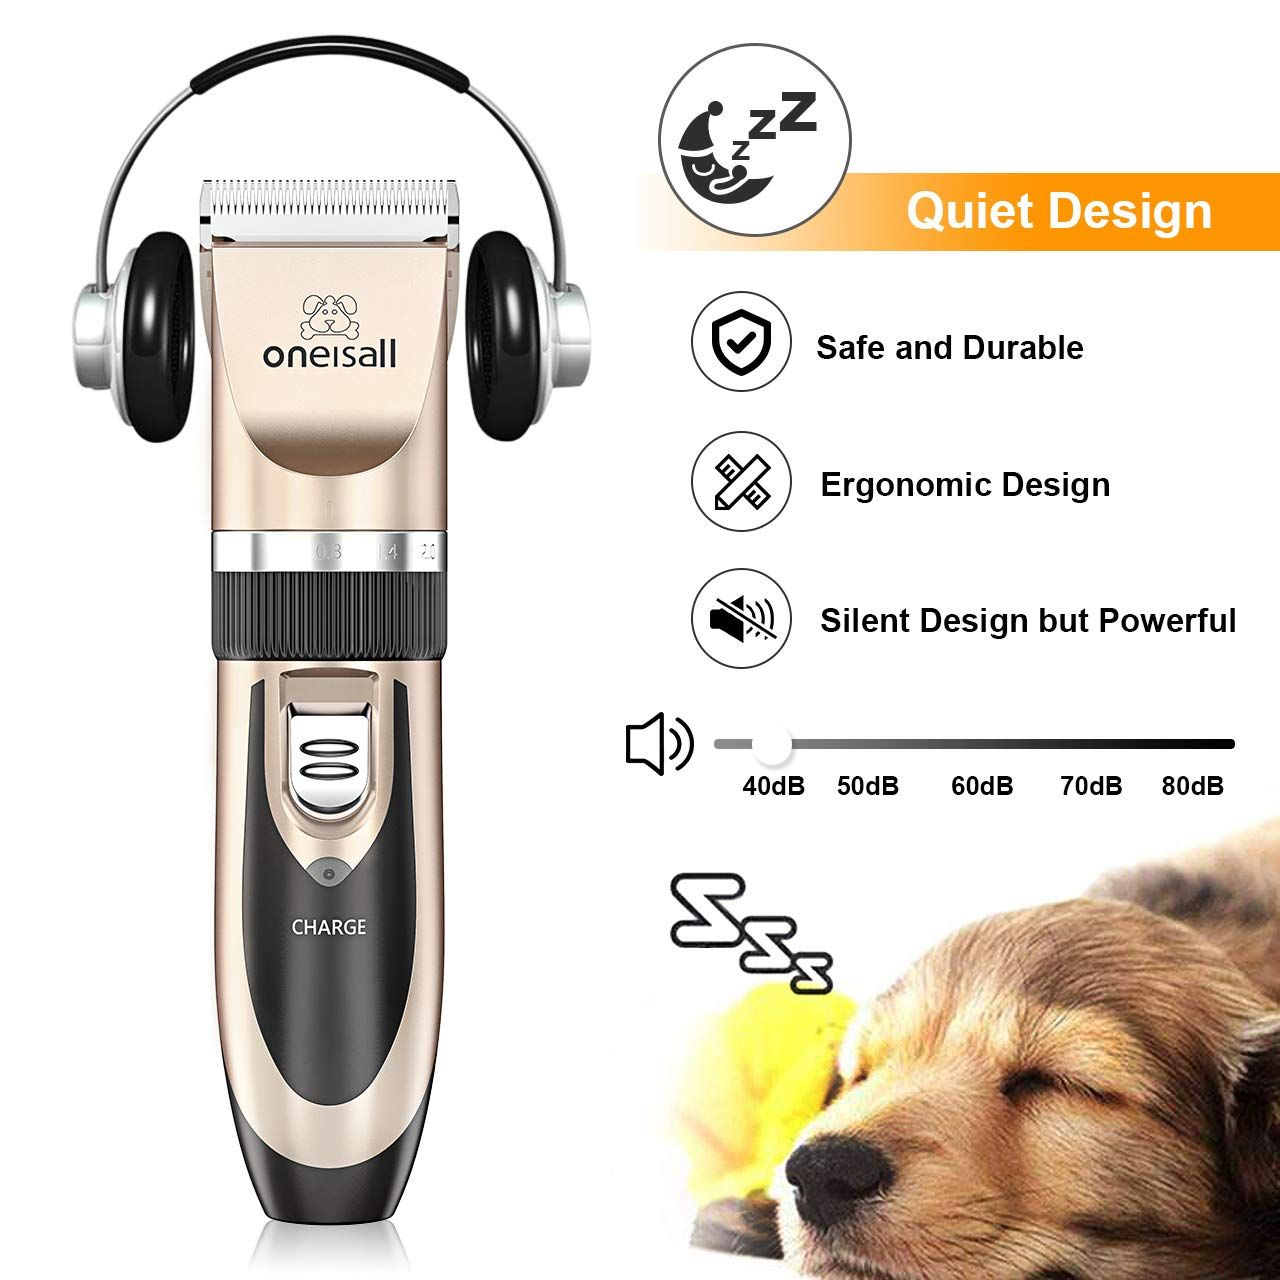 Oneisall Dog Shaver Clippers Low Noise Rechargeable Cordless Electric Quiet Hair Clippers Set For Dogs Cats Pets Noise Dog Clippers Hair Clippers Pet Grooming